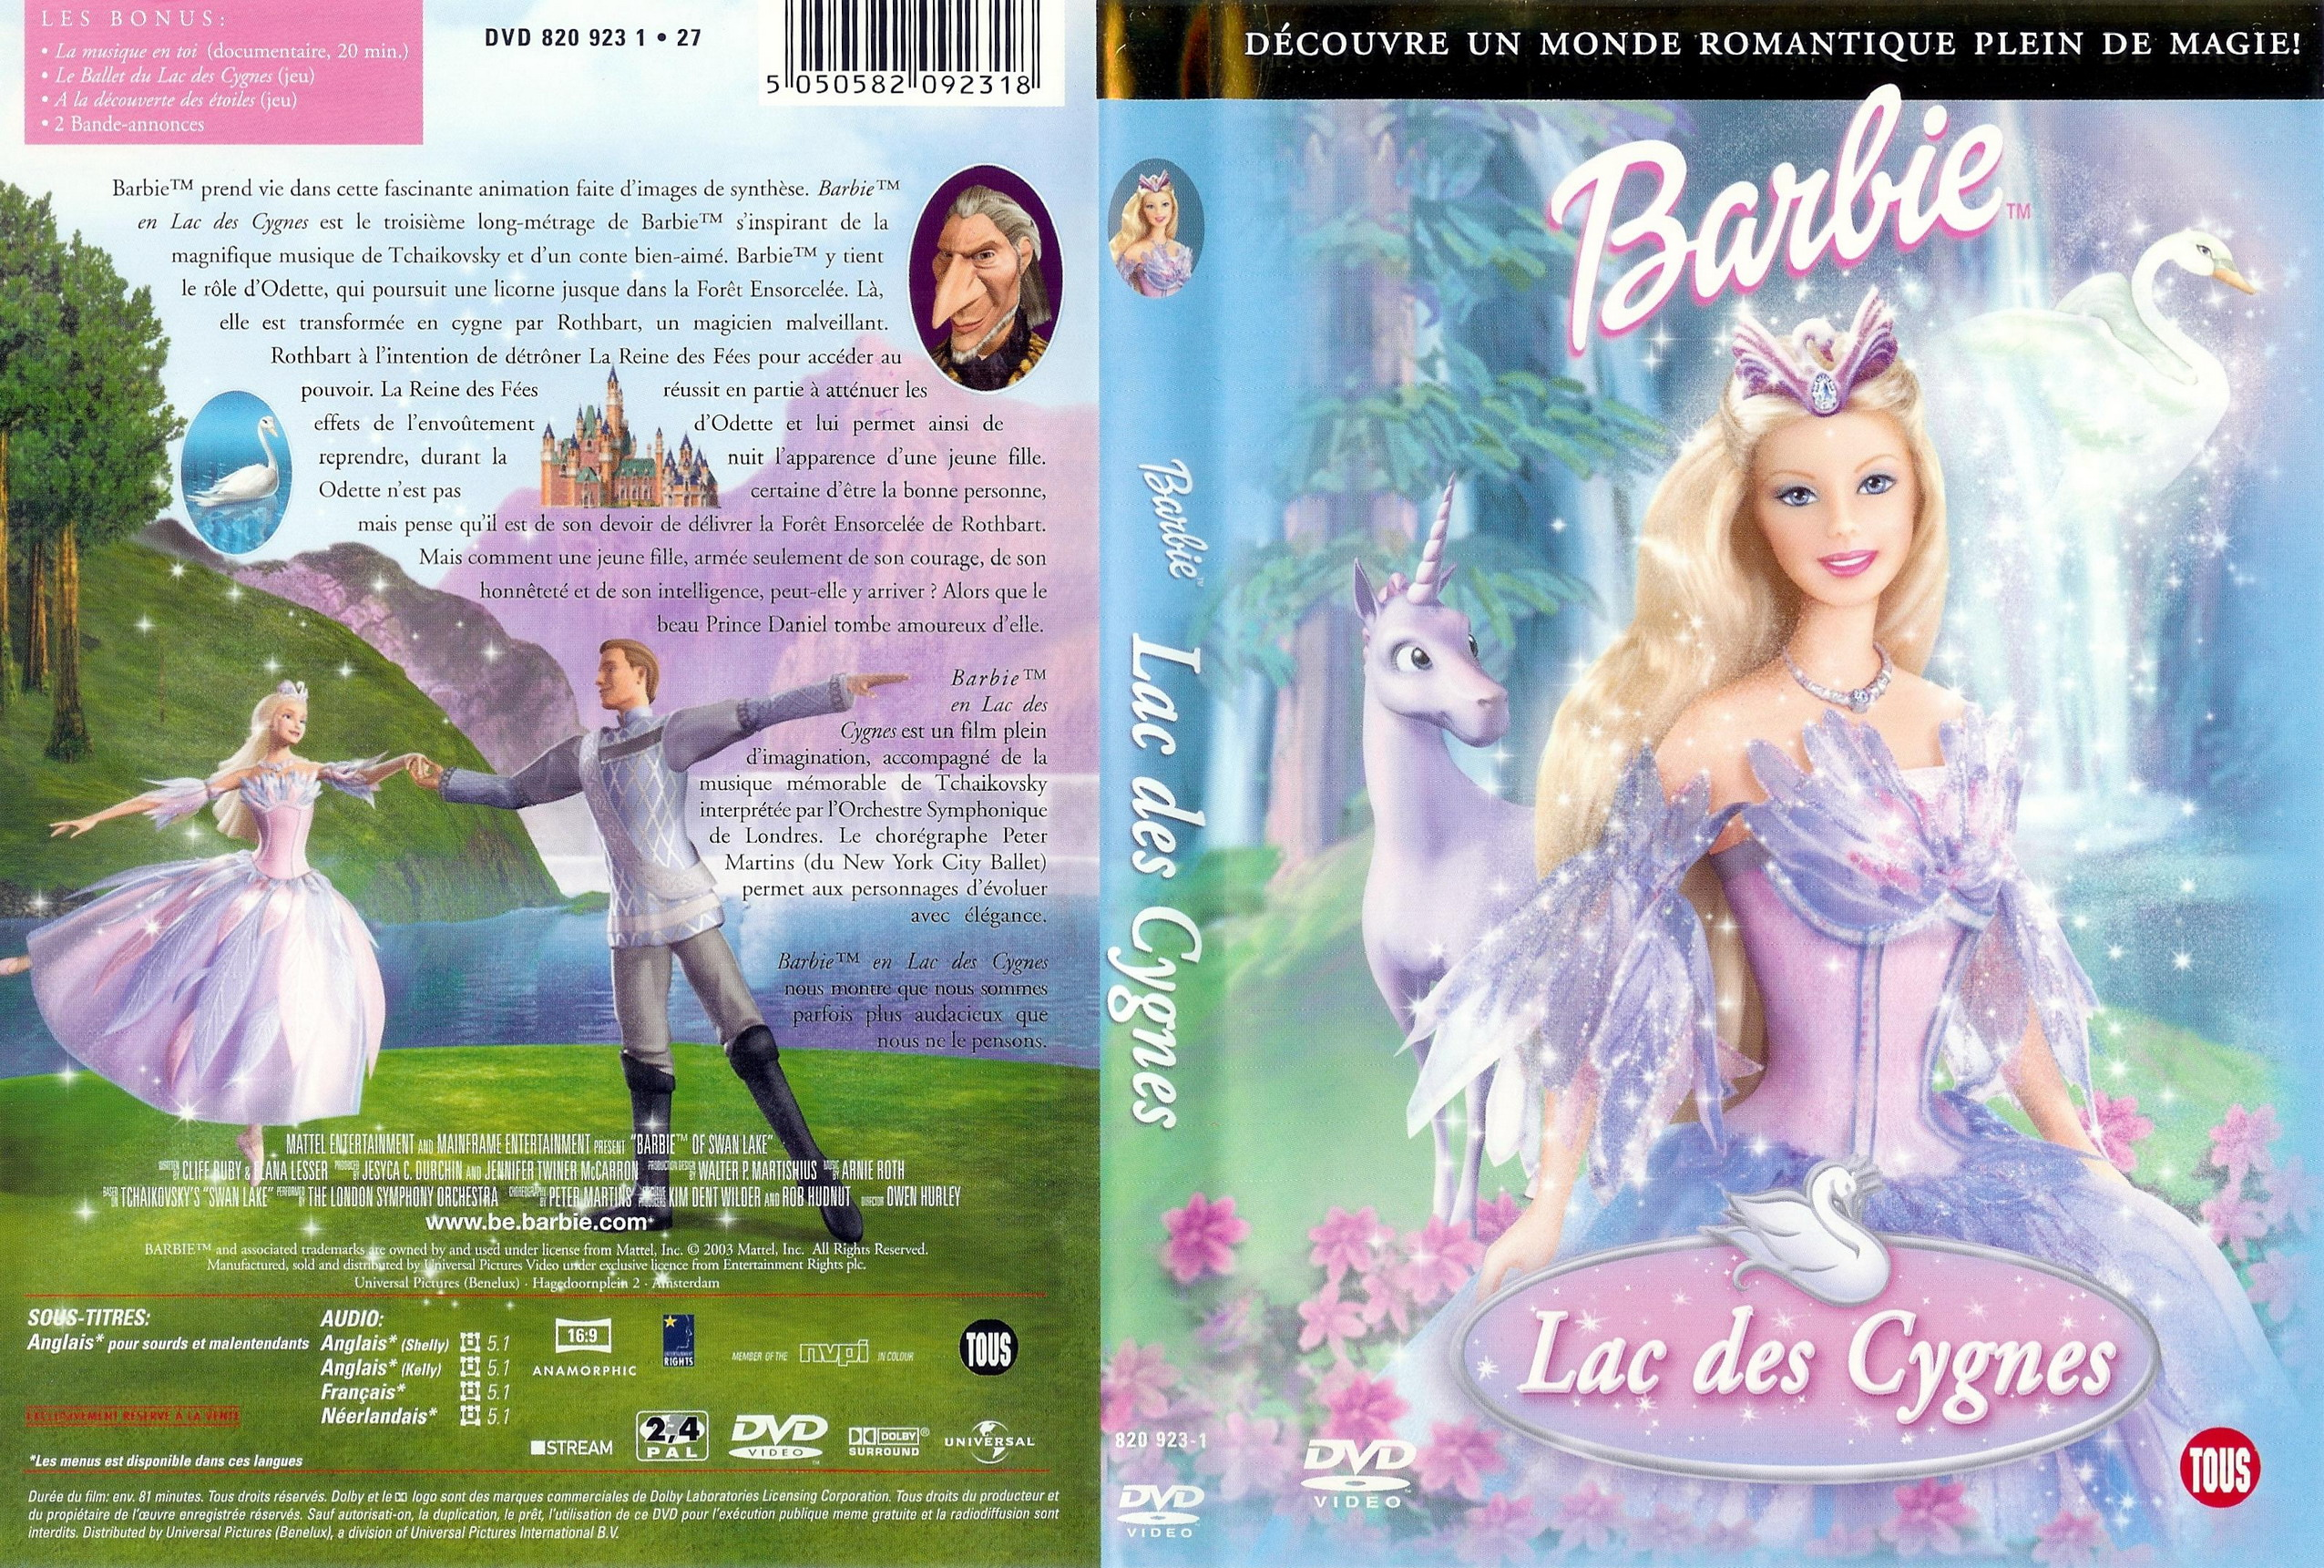 Pin dvd barbie lac des cygnes film on pinterest - Barbie le lac des cygnes ...